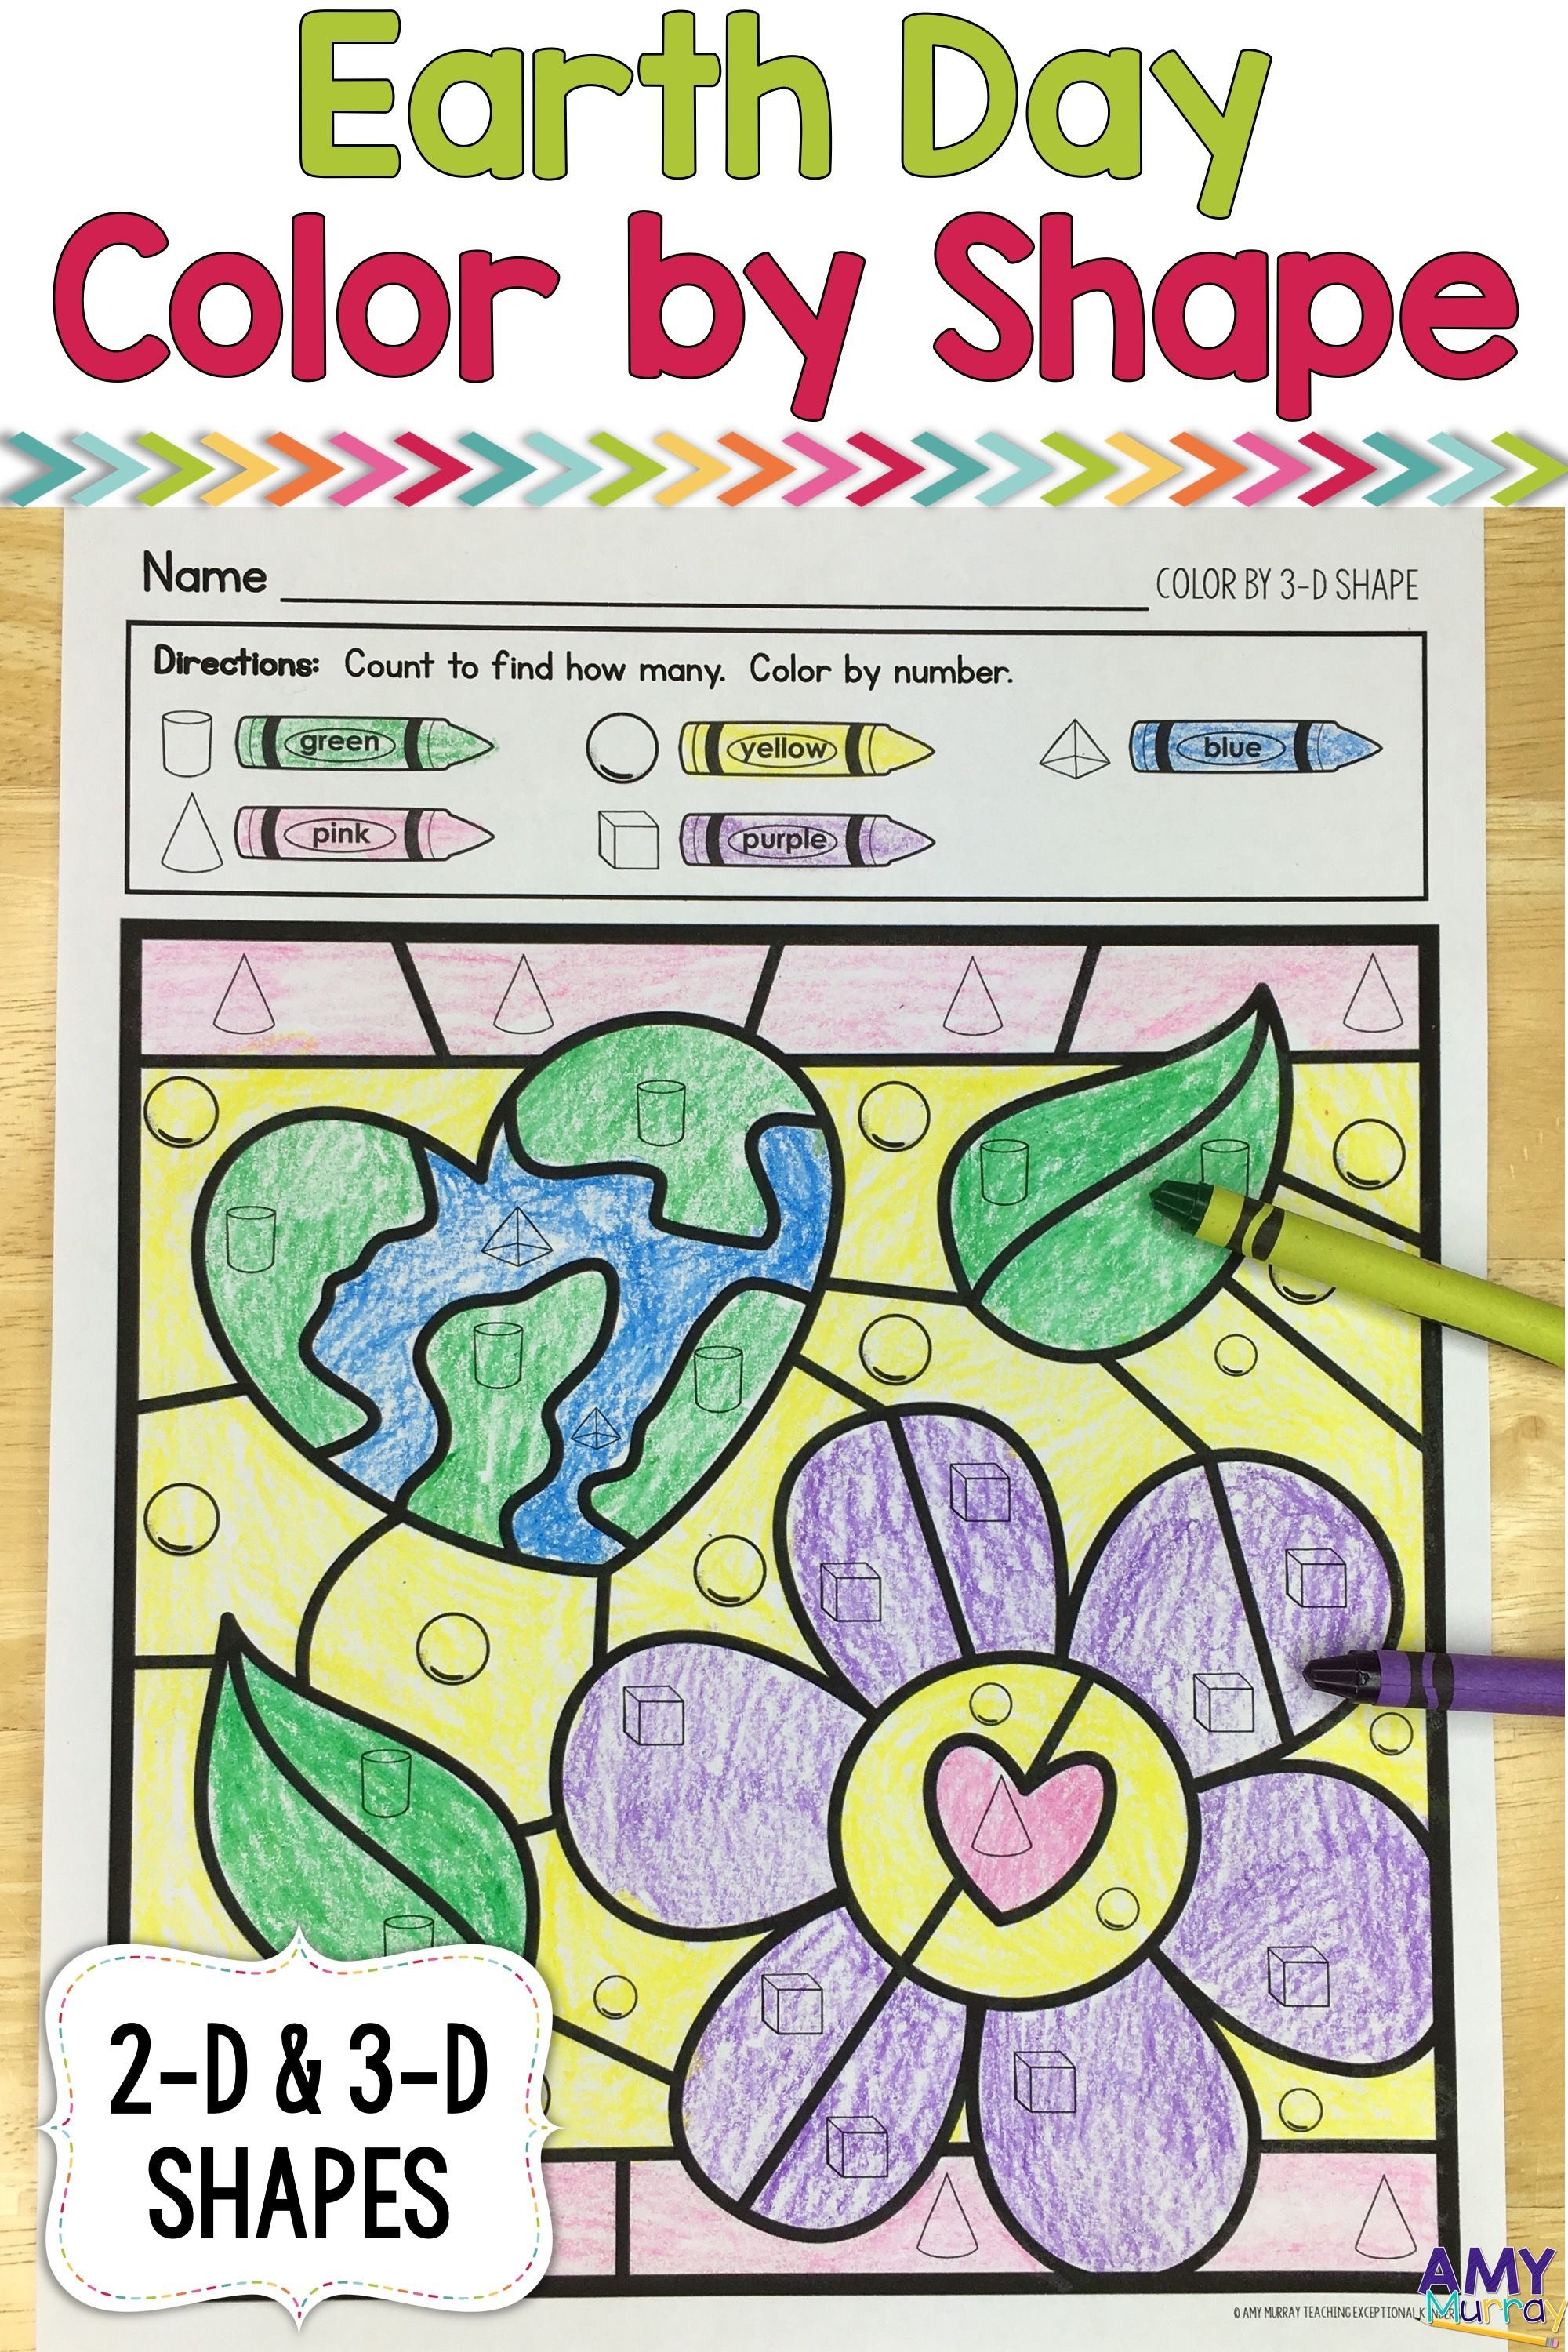 Earth Day Themed Color by Shape Kindergarten Math Worksheets | April ...